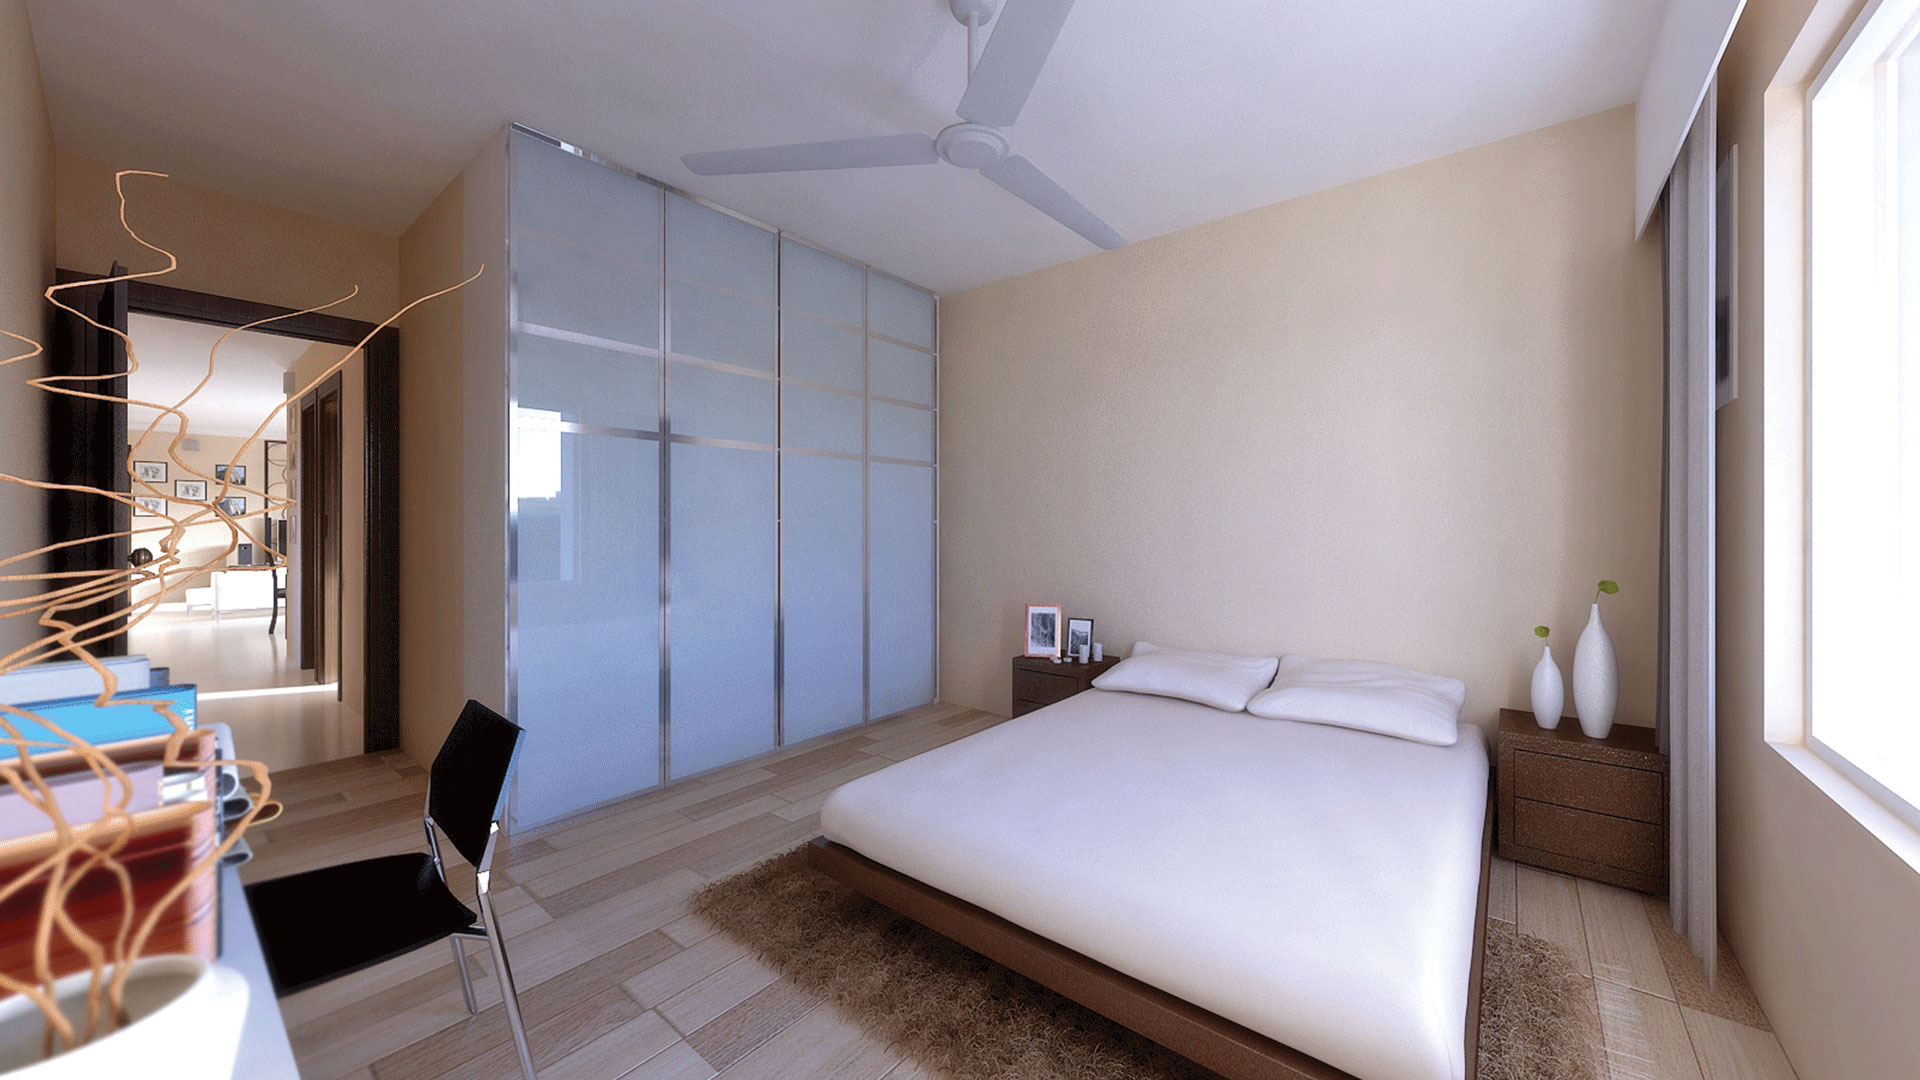 prestige-woodland-park-in-cooke-town-Bangalore-image-01